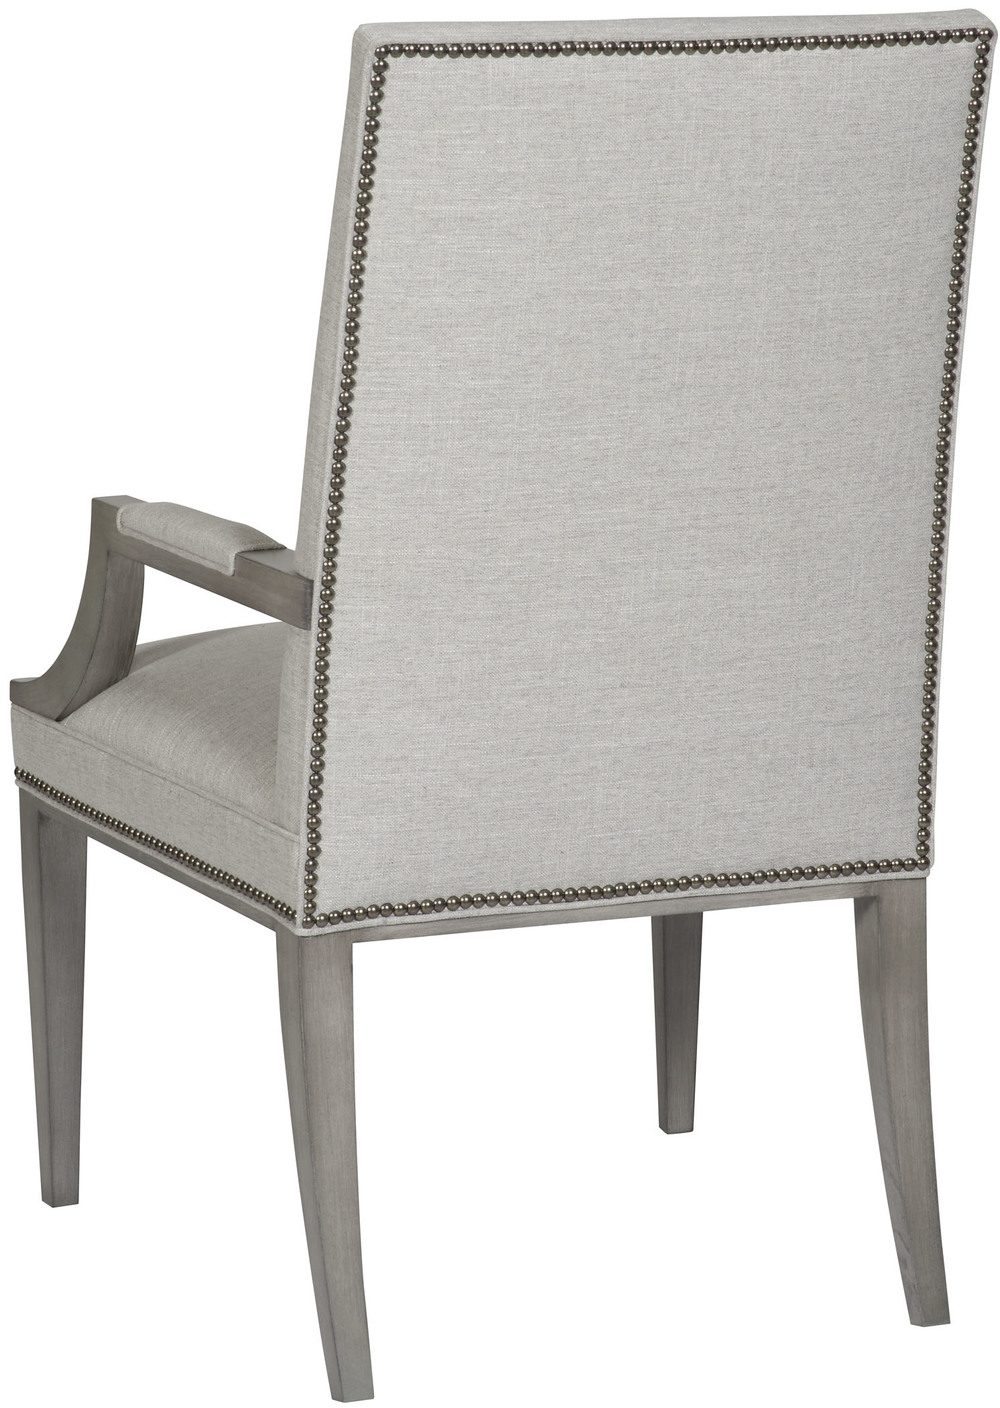 VANGUARD FURNITURE COMPANY - Hanover Button Back Side Chair